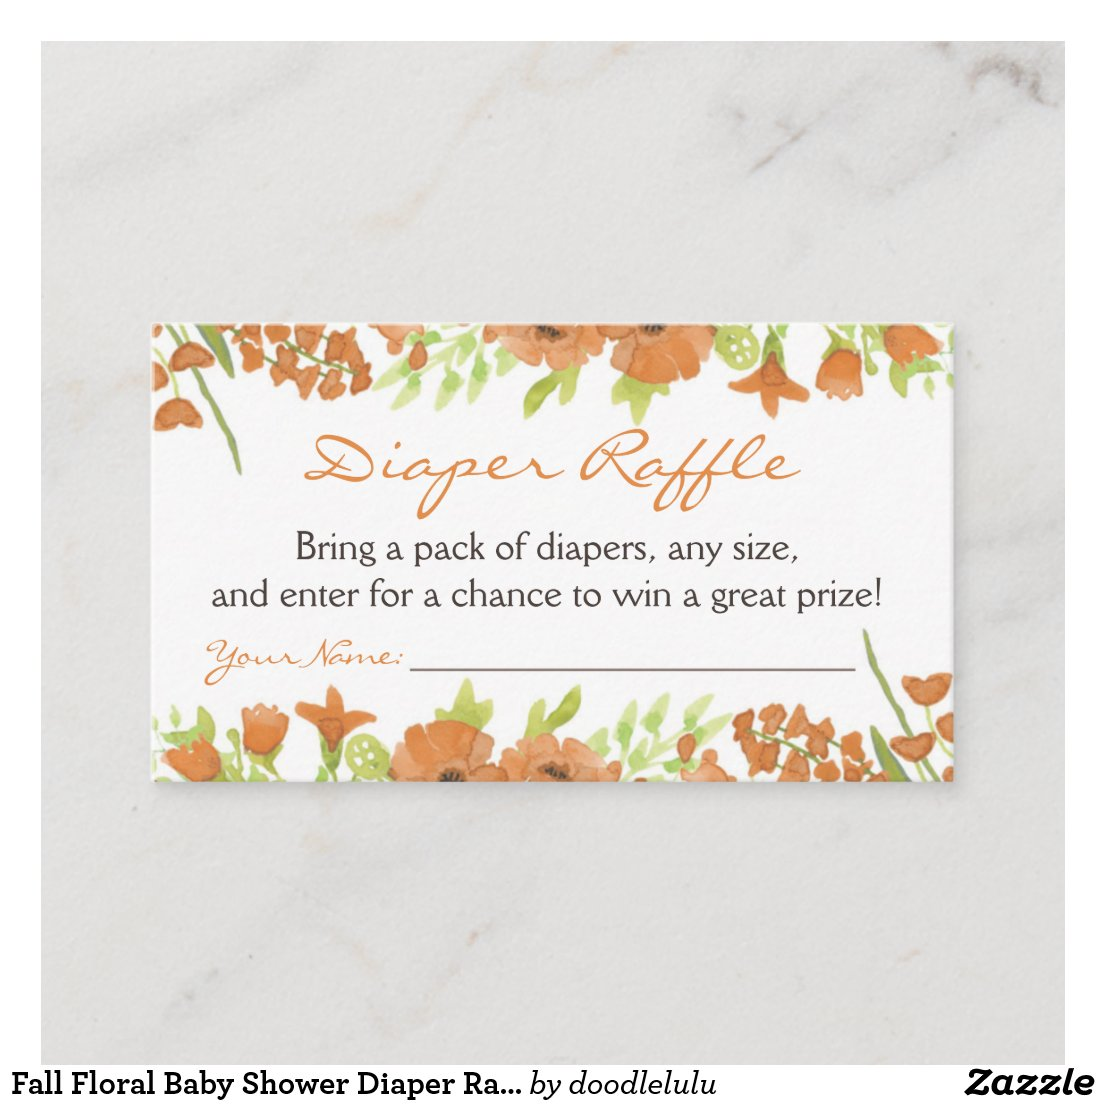 Fall Floral Baby Shower Diaper Raffle Ticket Enclosure Card